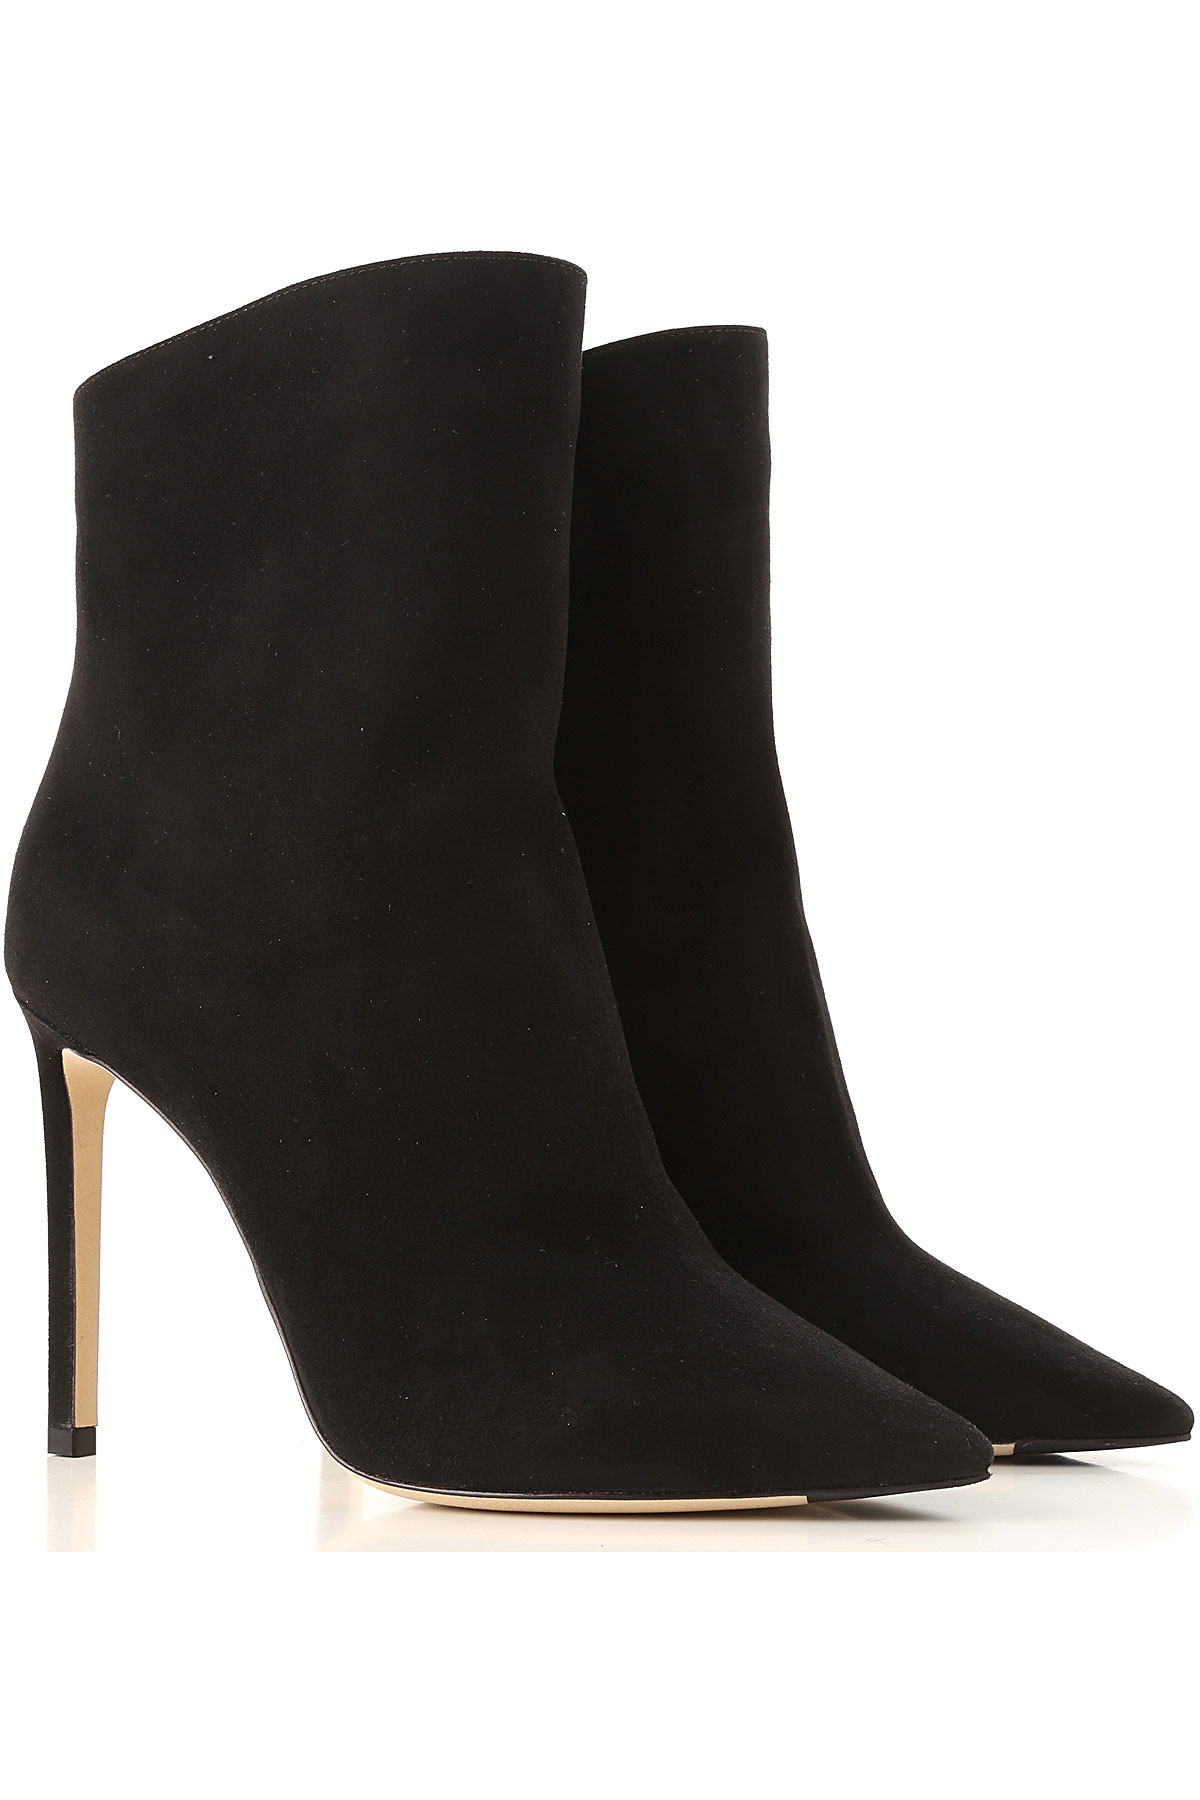 Jimmy Choo Boots for Women, Booties On Sale, Black, suede, 2019, 6 8